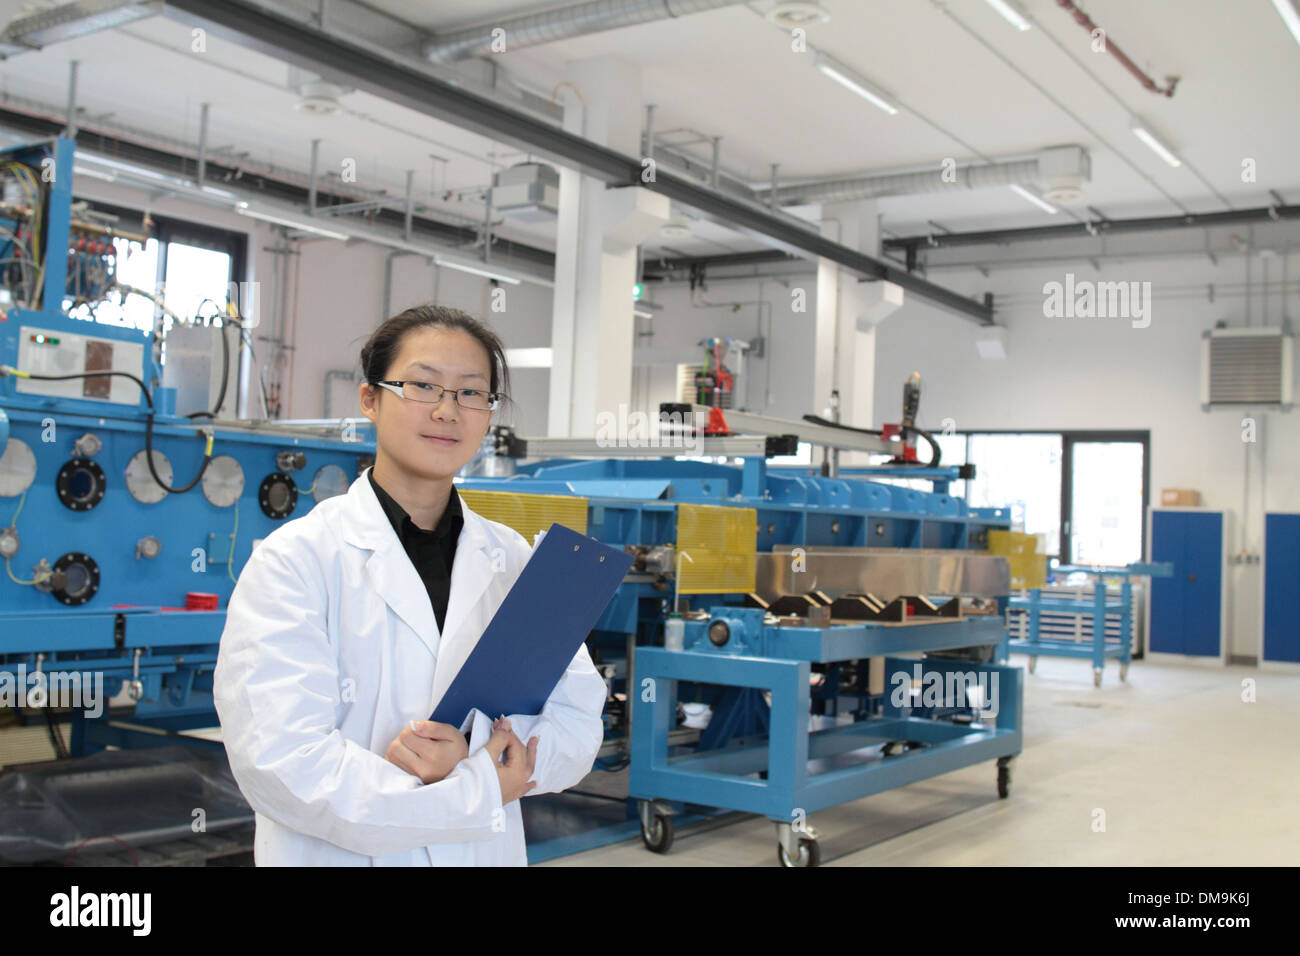 an Asia woman scientist is working in a holography lab with cleanroom coat installing new technolgy Stock Photo